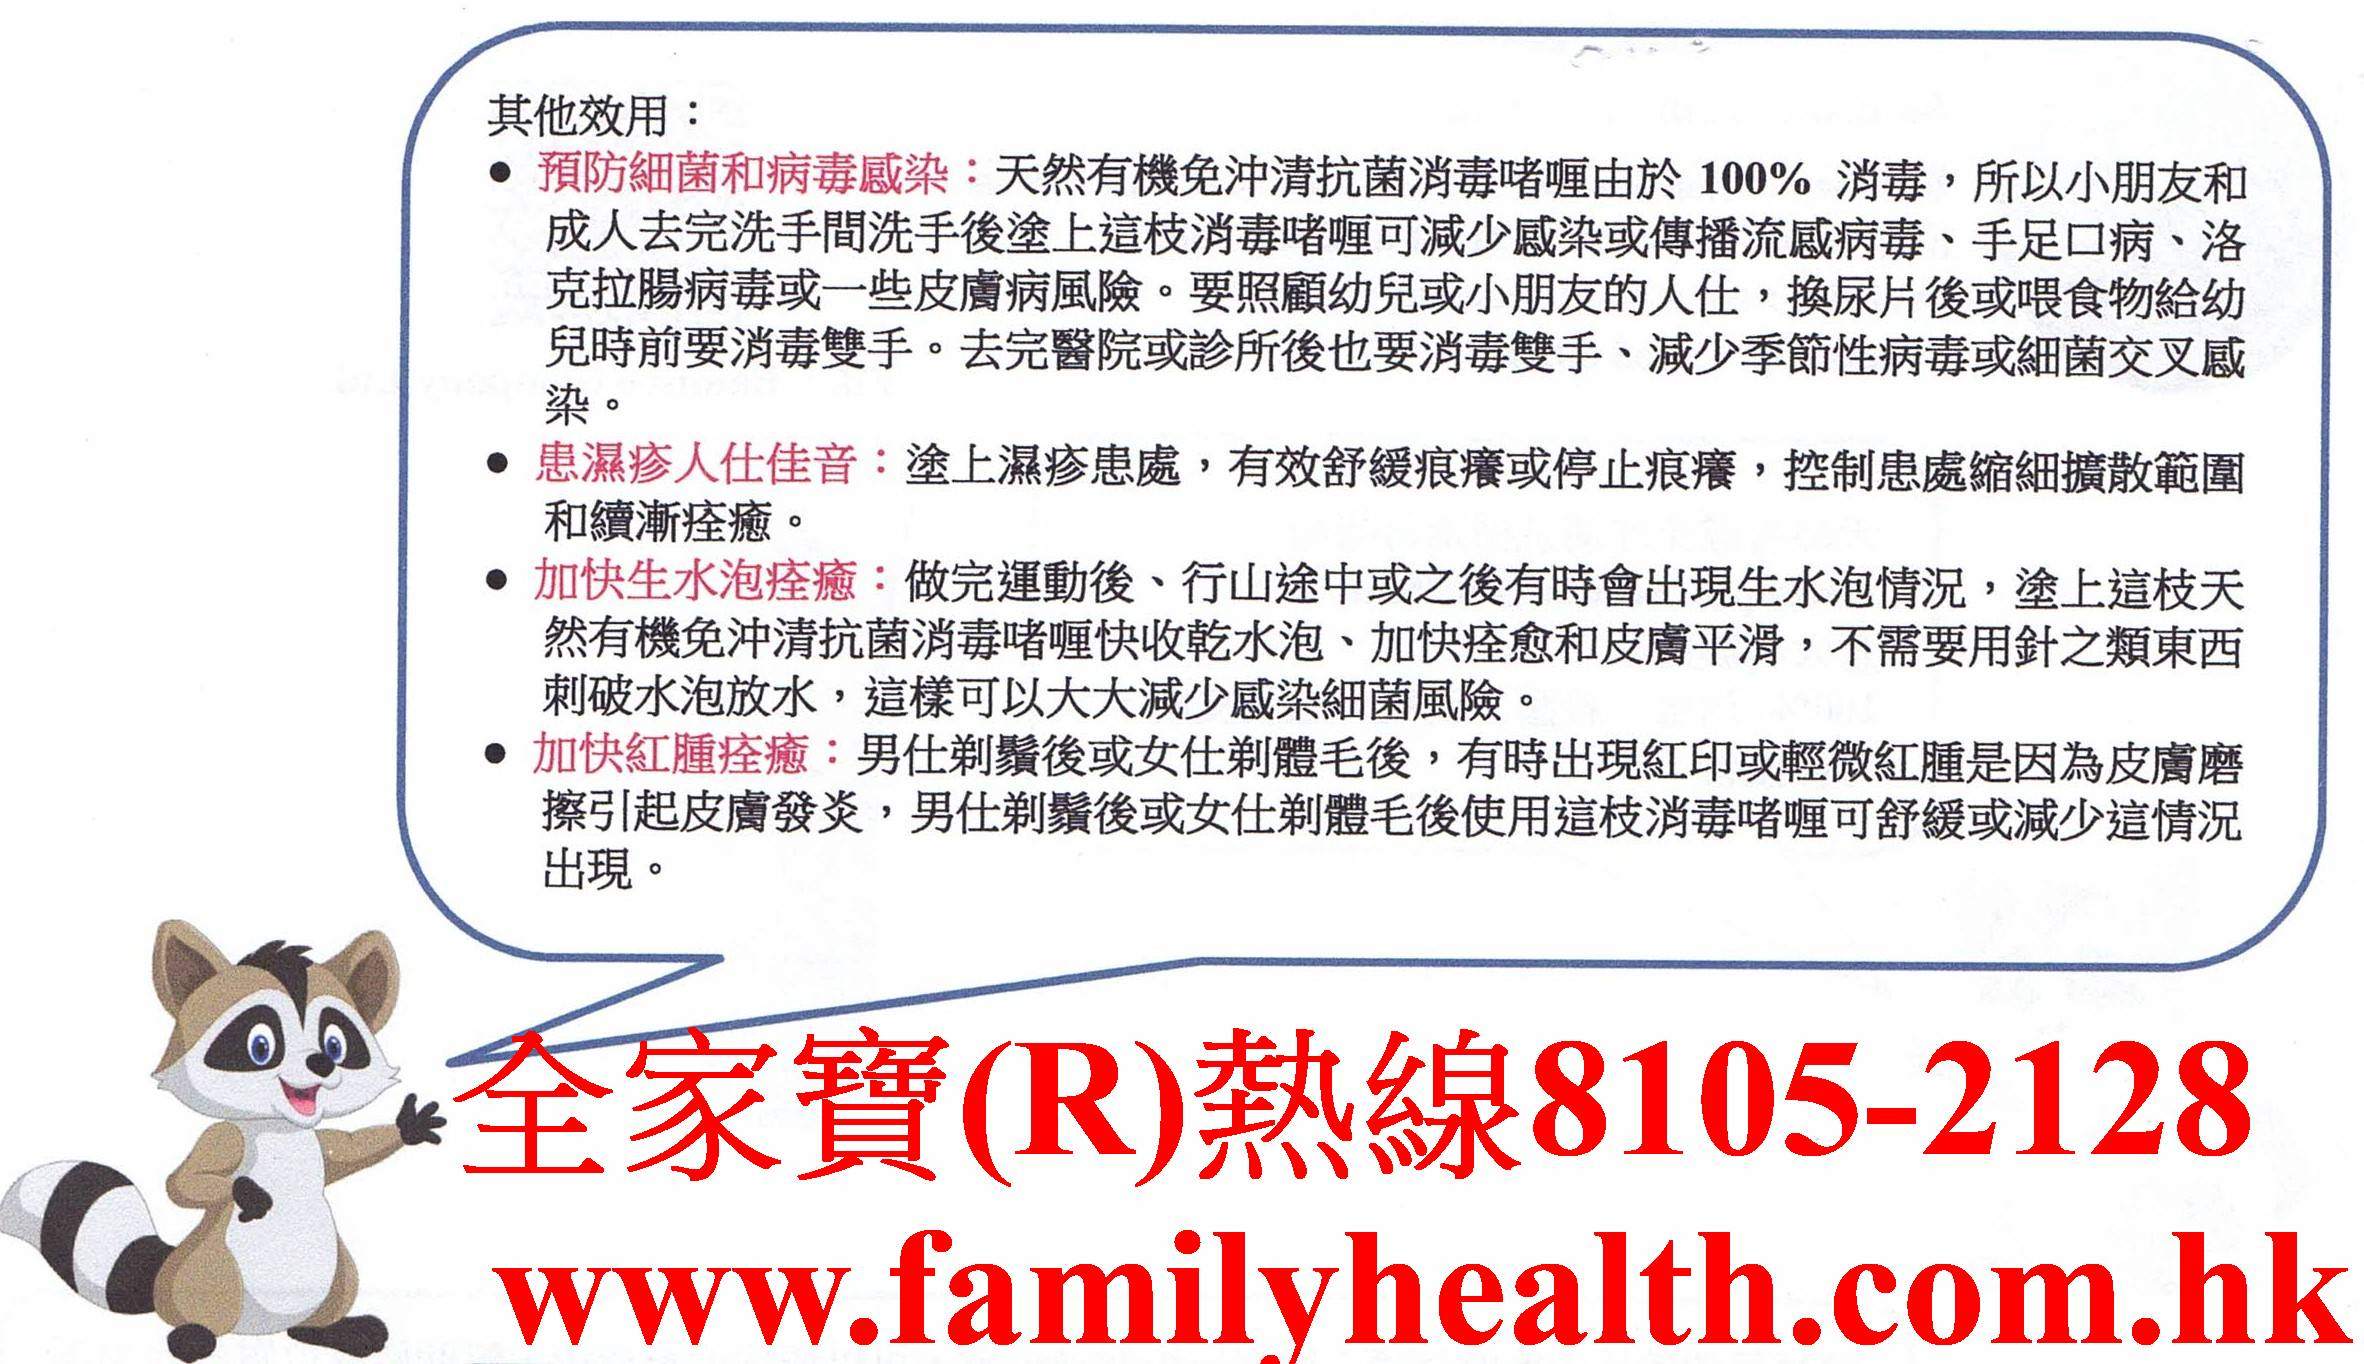 http://www.familyhealth.com.hk/files/full/1014_4.jpg